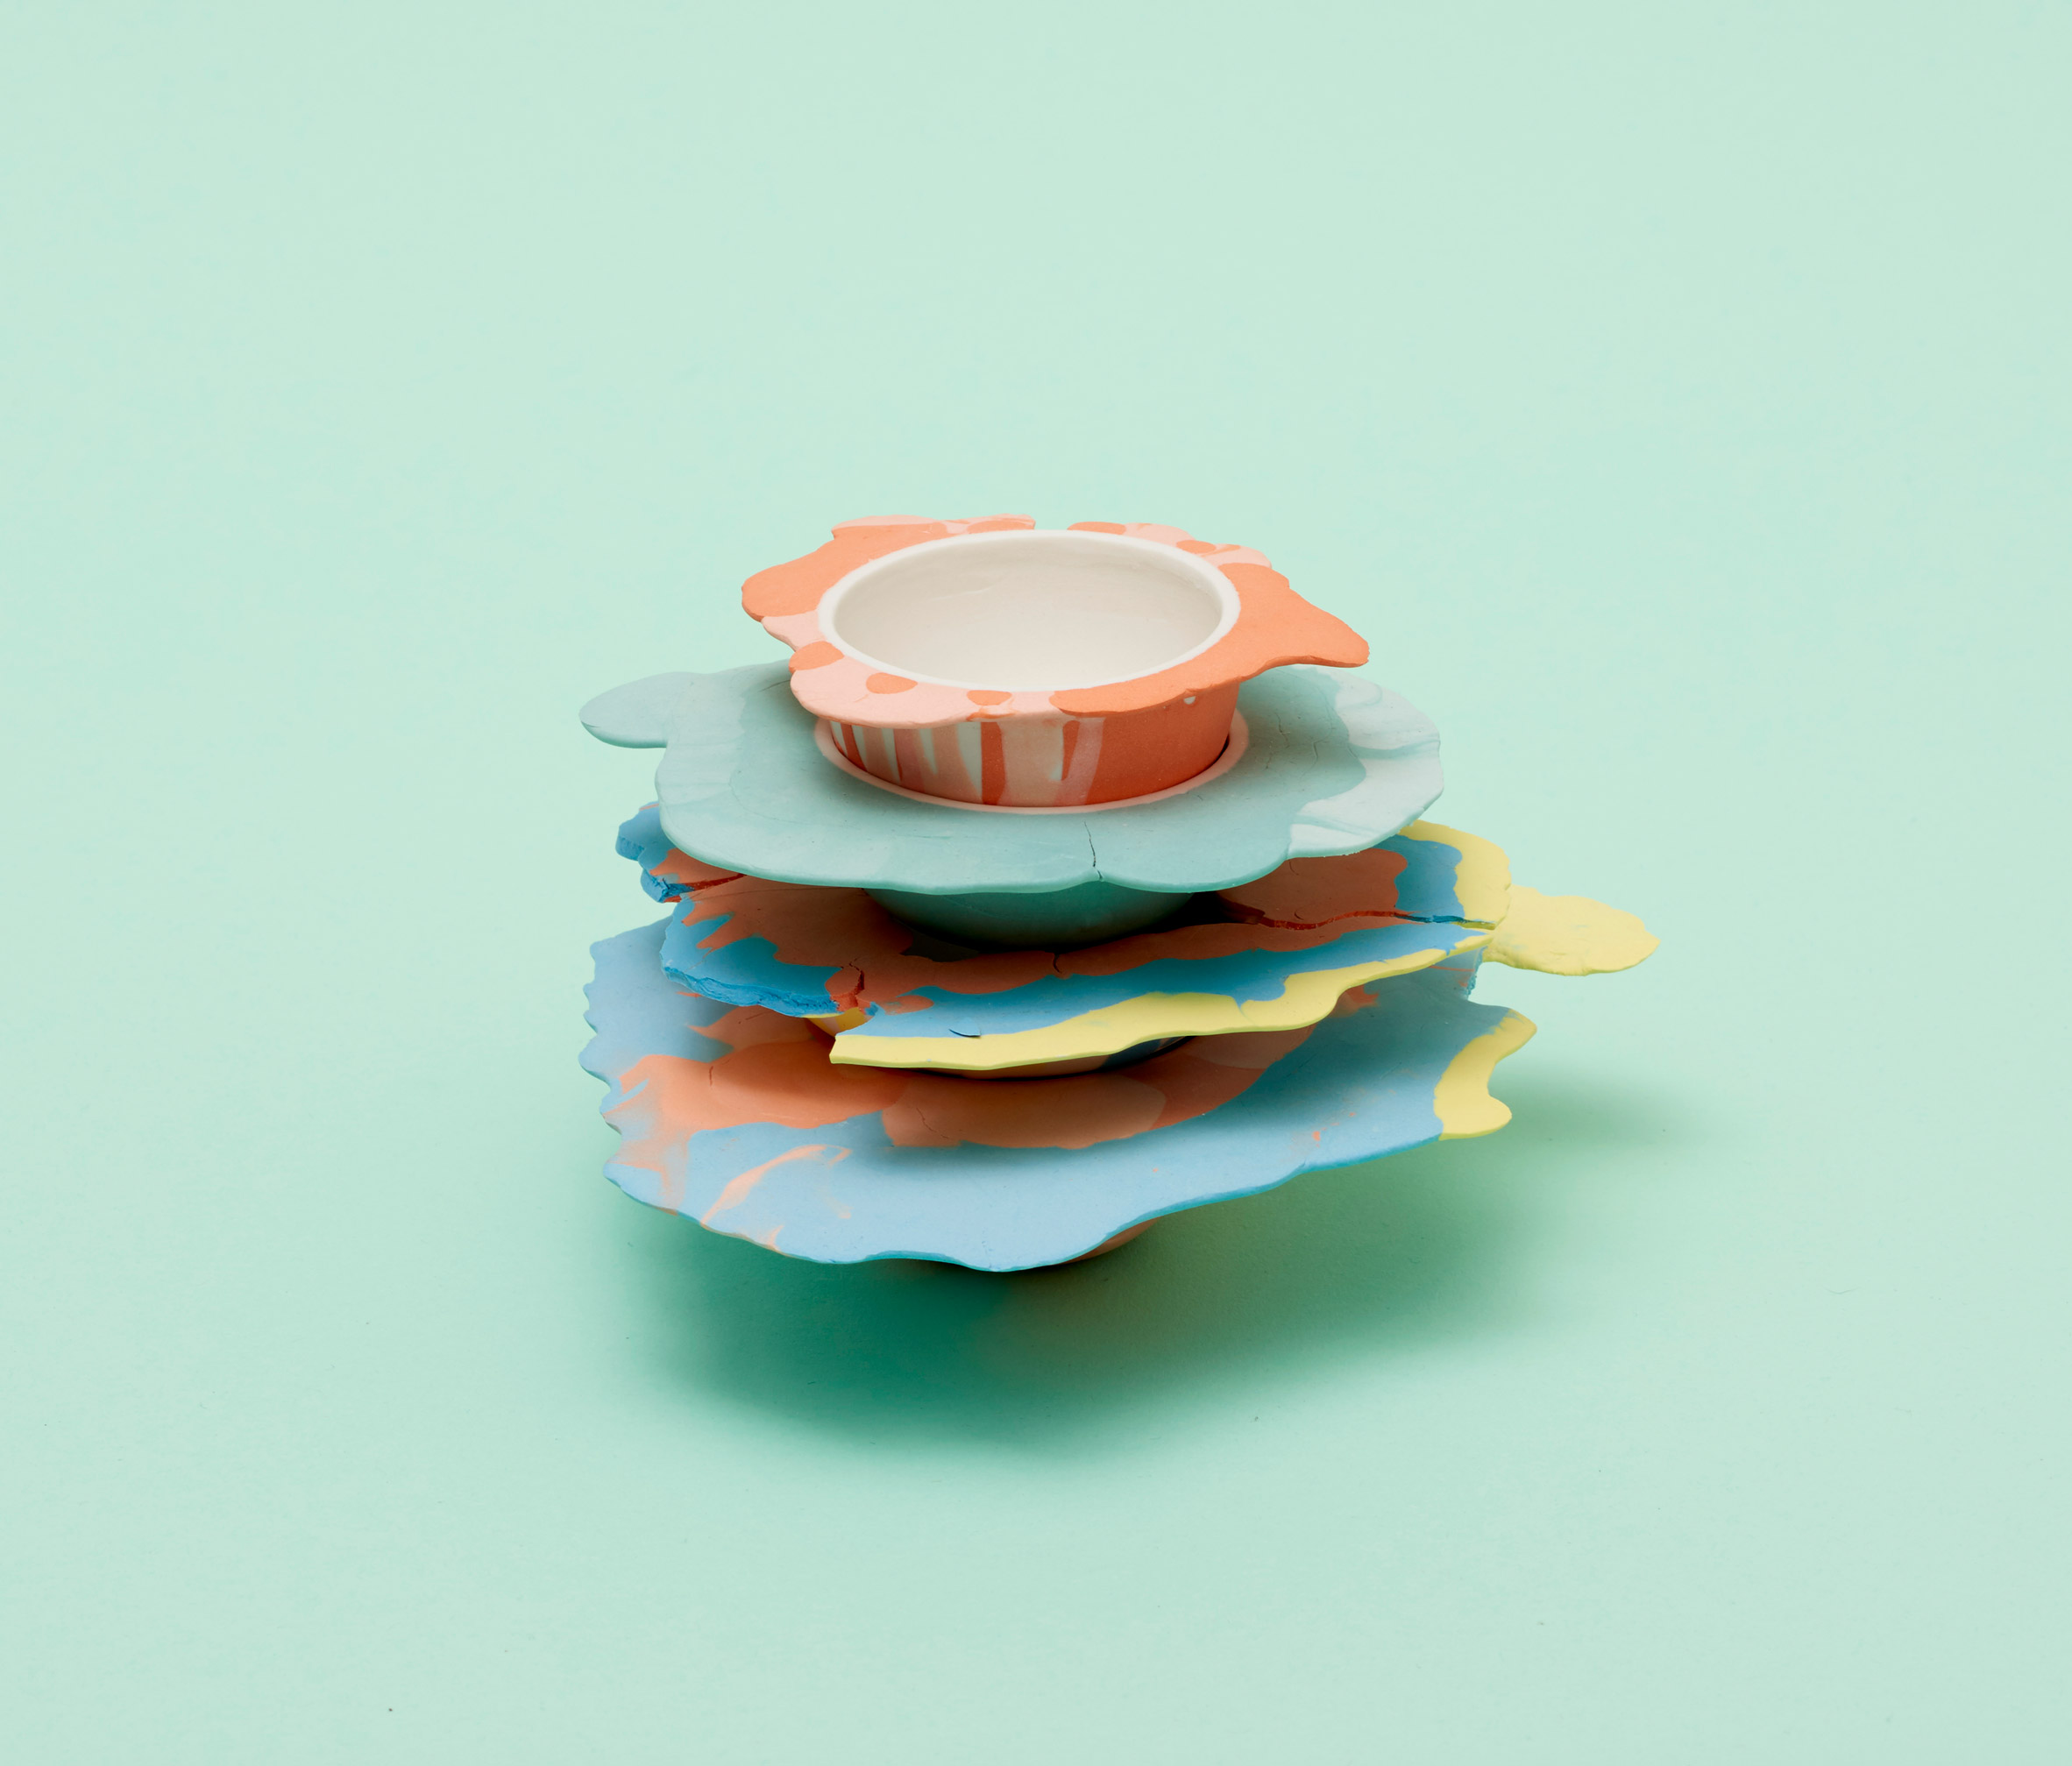 Alissa Volchkova designs porcelain bowls to look like paint blobs